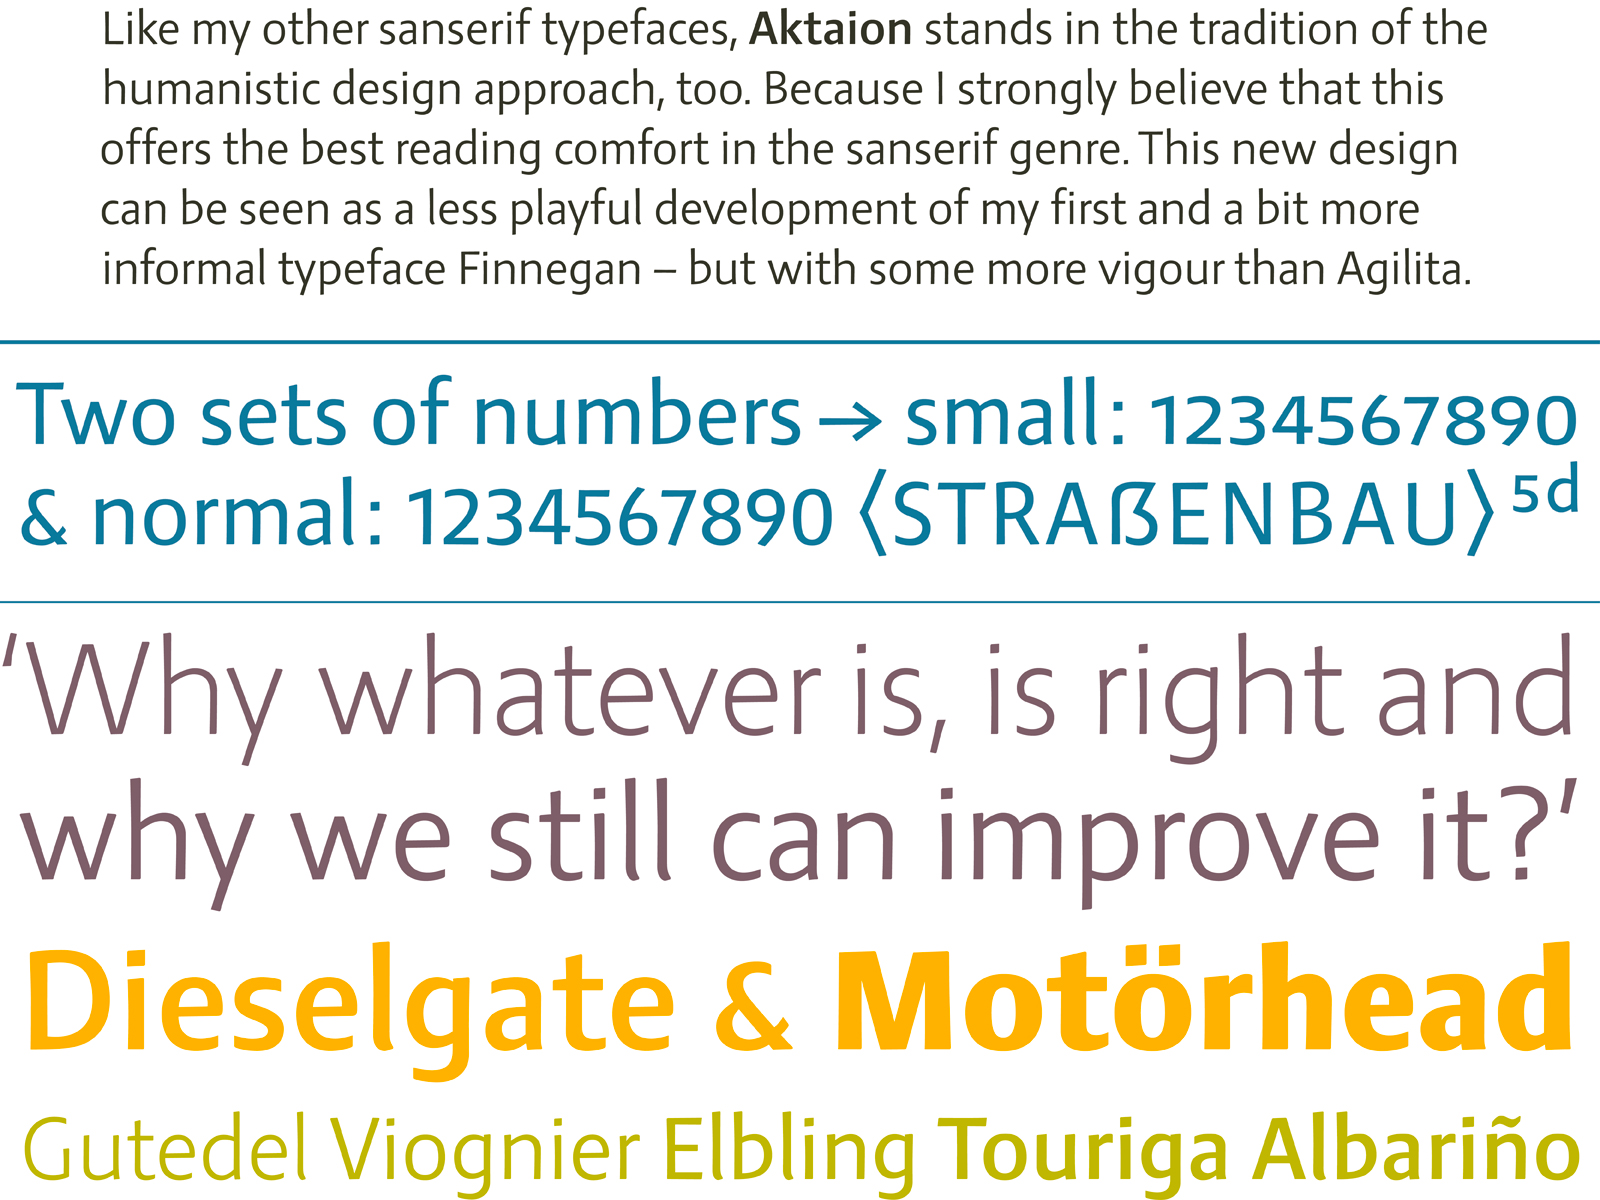 design concept of Aktaion typeface by Jürgen Weltin type matters